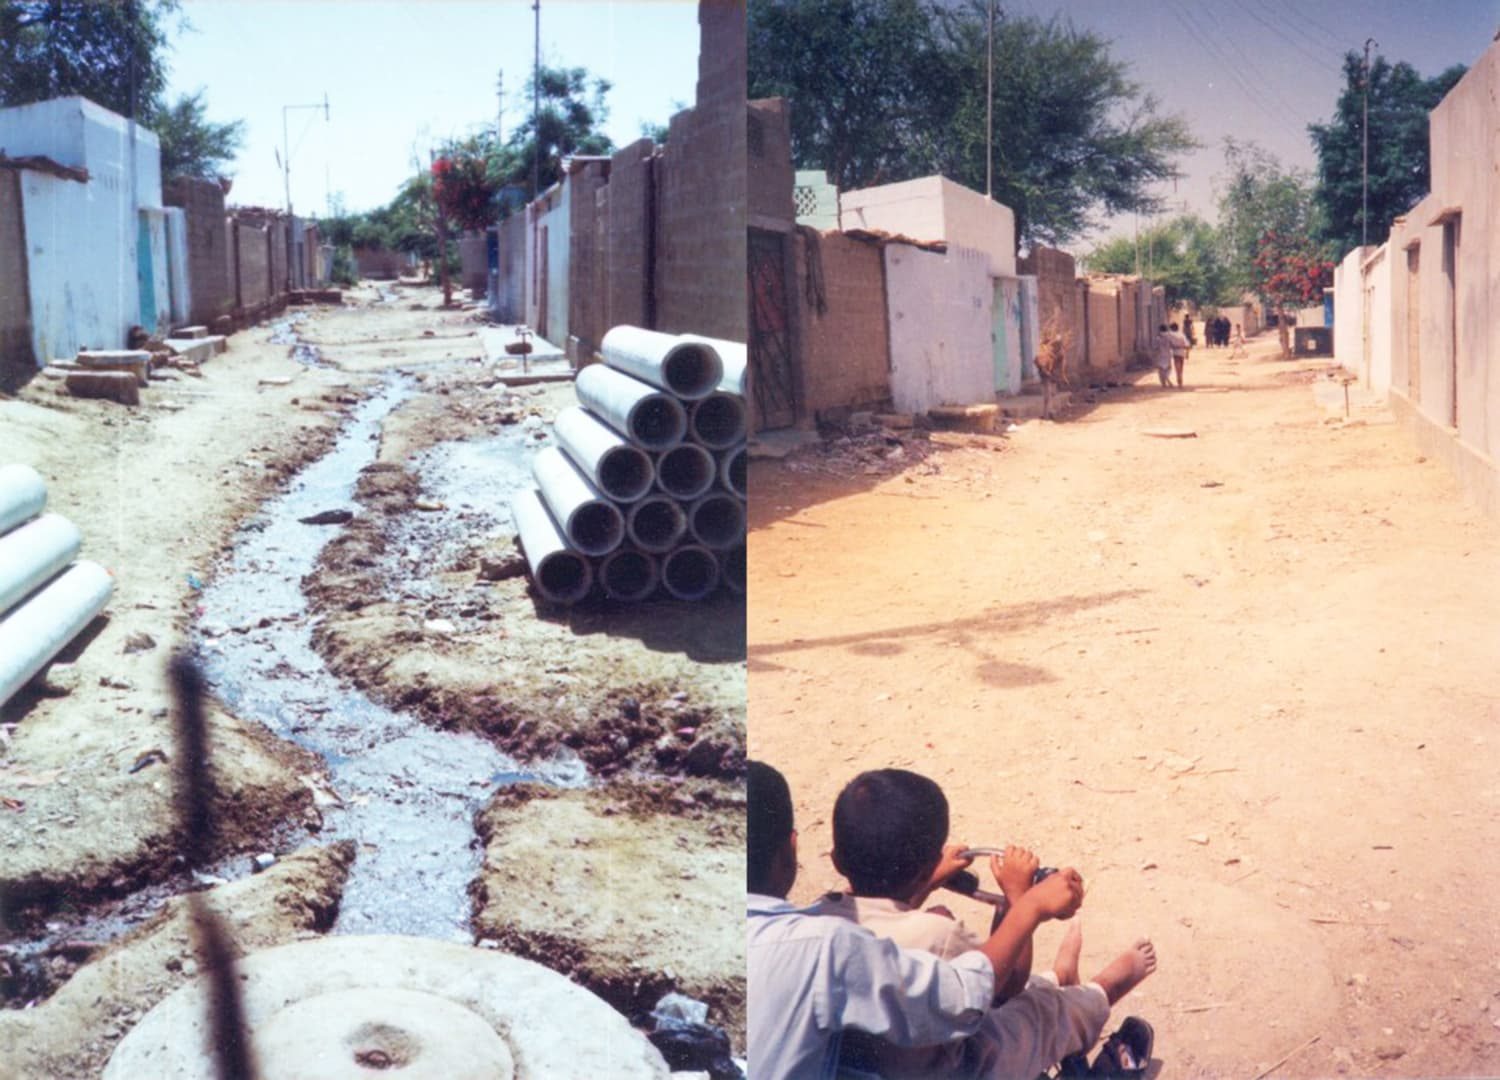 Two photos of the same street in one of Karachi's largest impoverished areas, Orangi. The pictures were taken by famous architect and sociologist Arif Hassan to demonstrate the success of the Orangi Pilot Project.